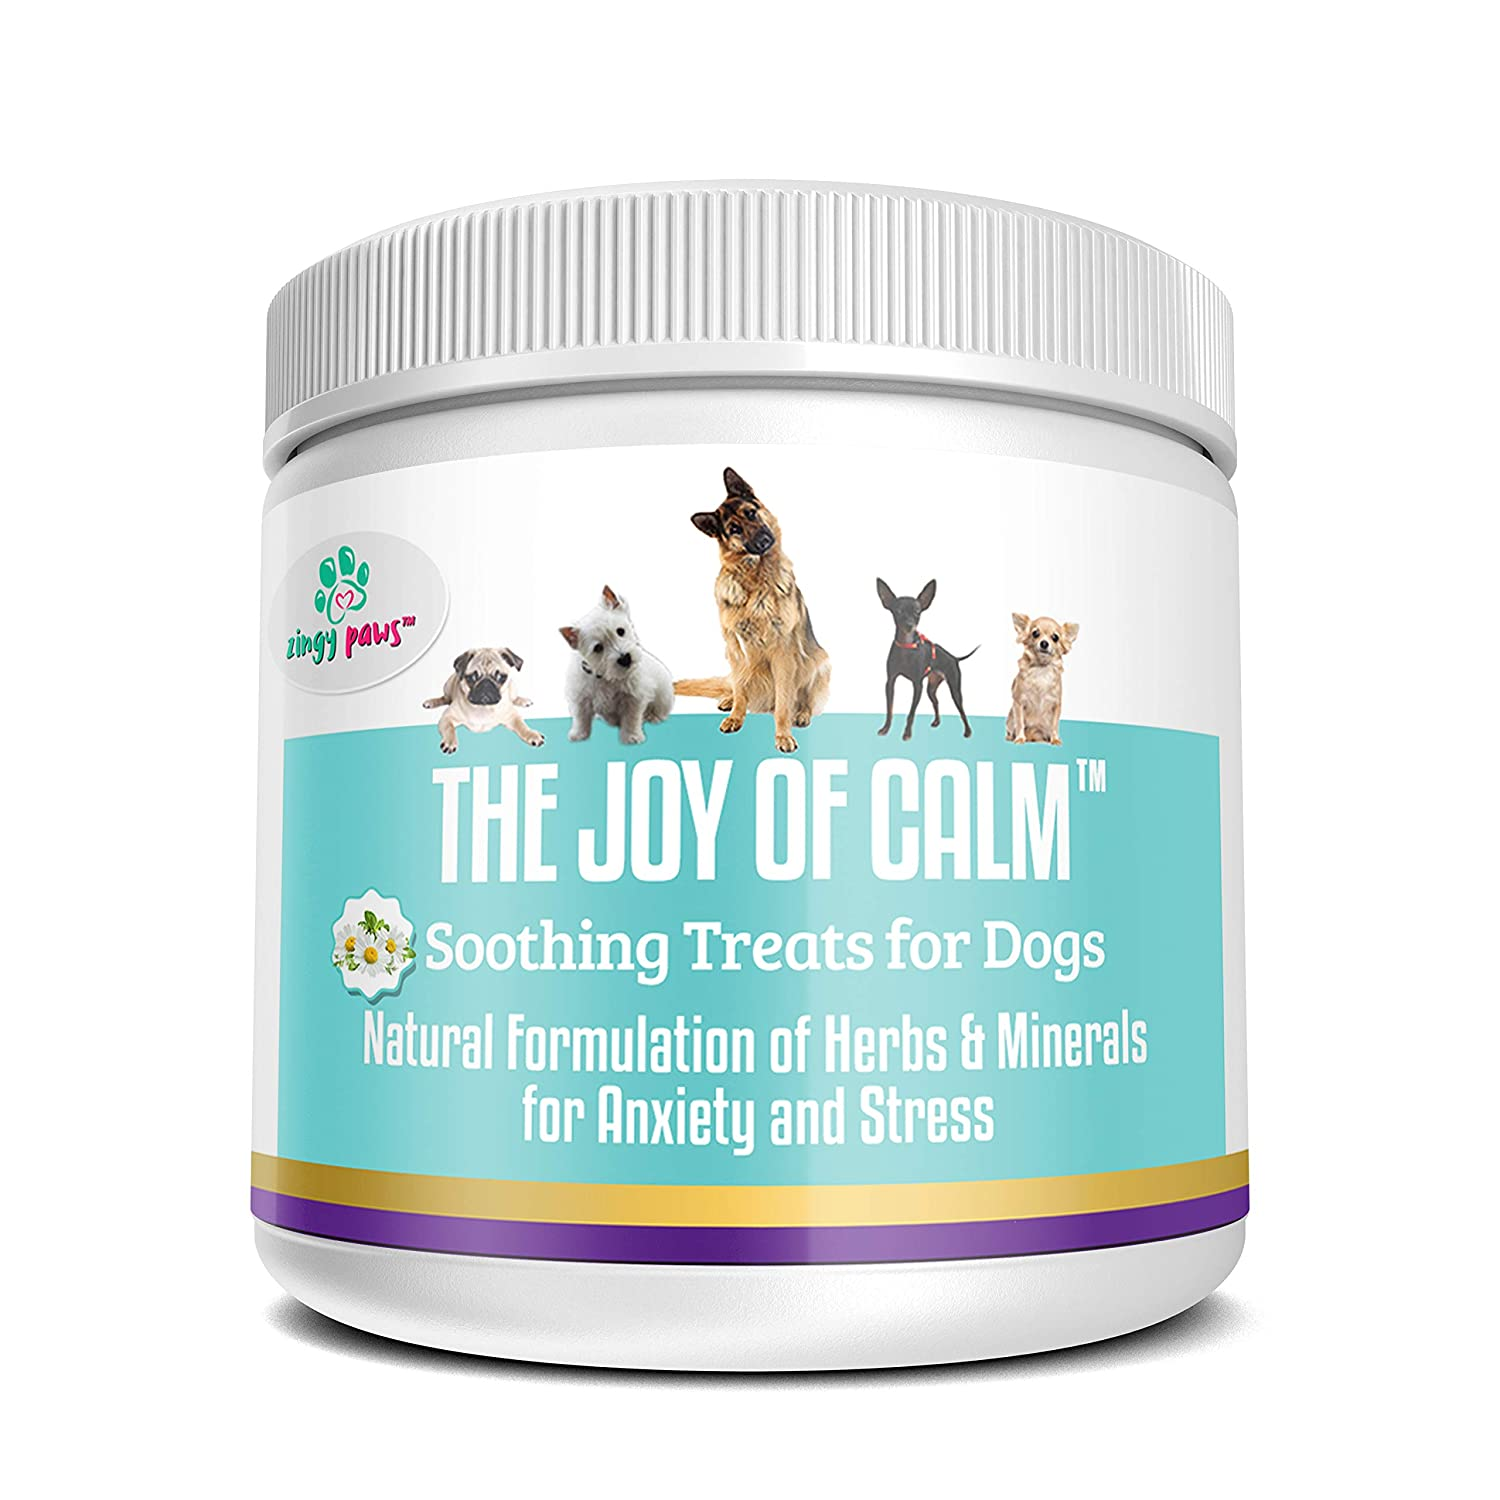 Calming Dog Treats Anxiety Relief Dog Treats Stress Relief Dog Treats Dog Anxiety Relieving Calming Treats by AuMeow 8oz Jar All Natural Hemp Seed Stress Relief Vitamin B Magnesium Chamomile